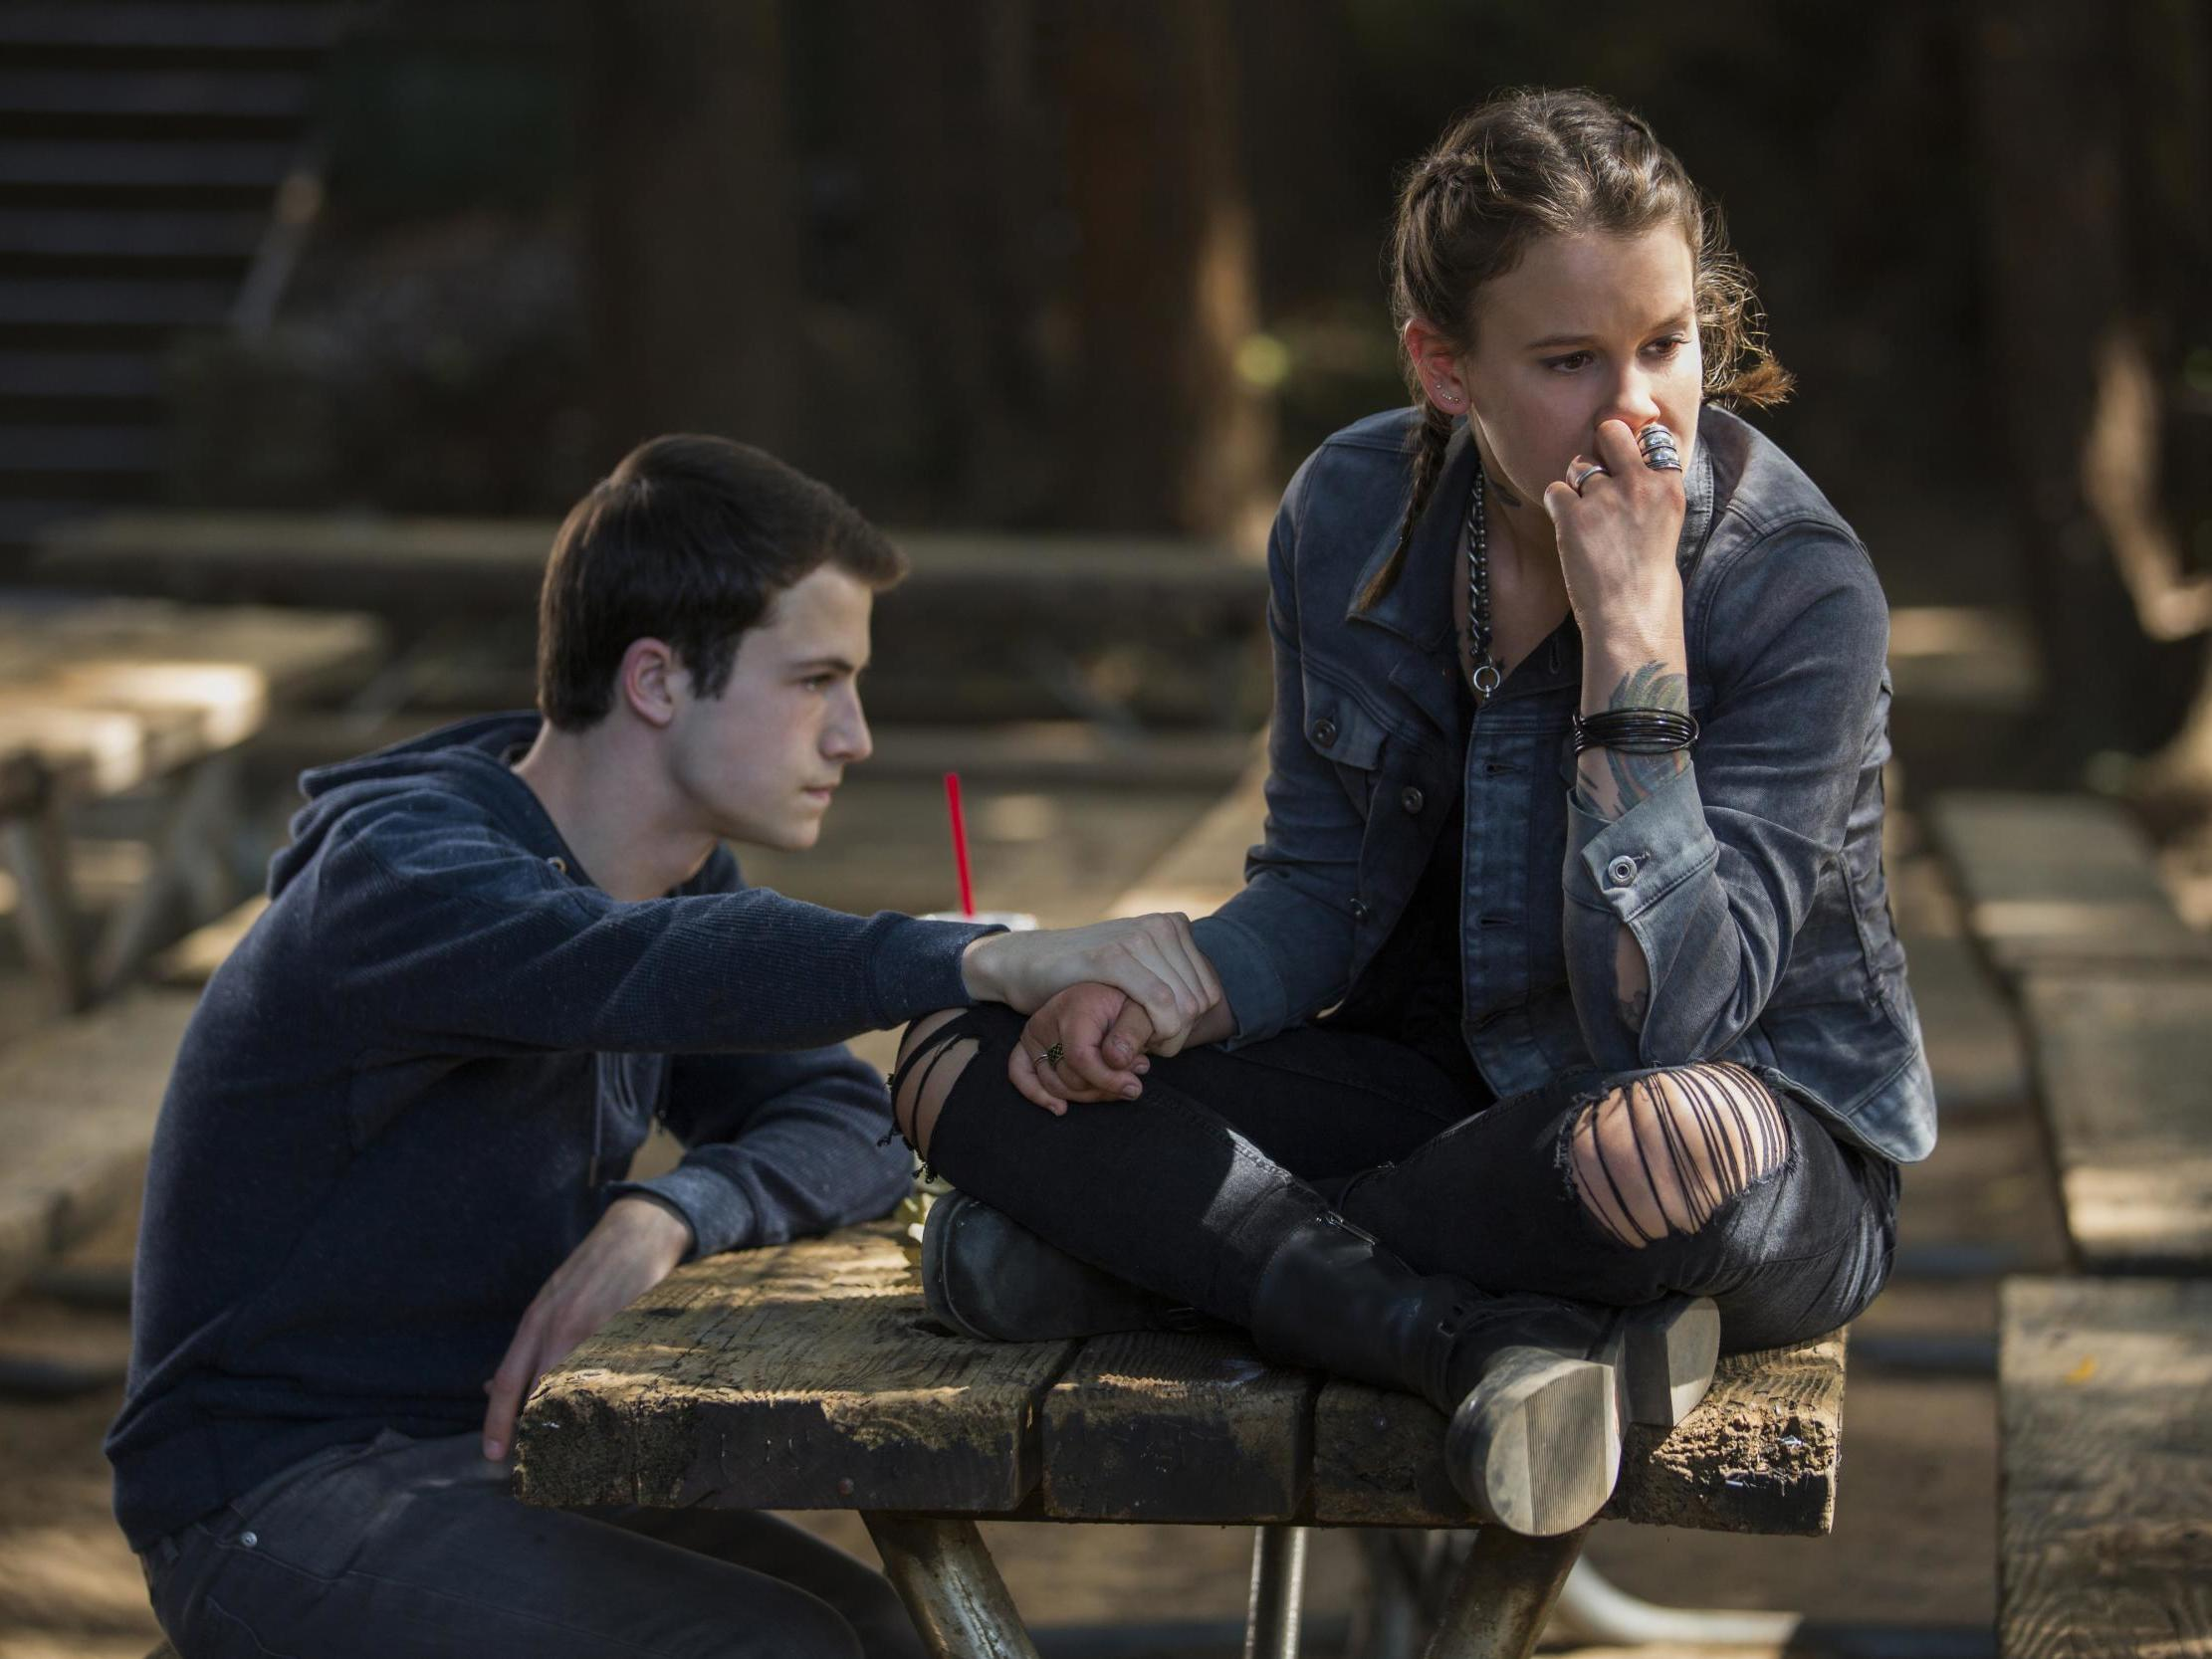 Netflix's 13 Reasons Why remains a woeful depiction of mental health